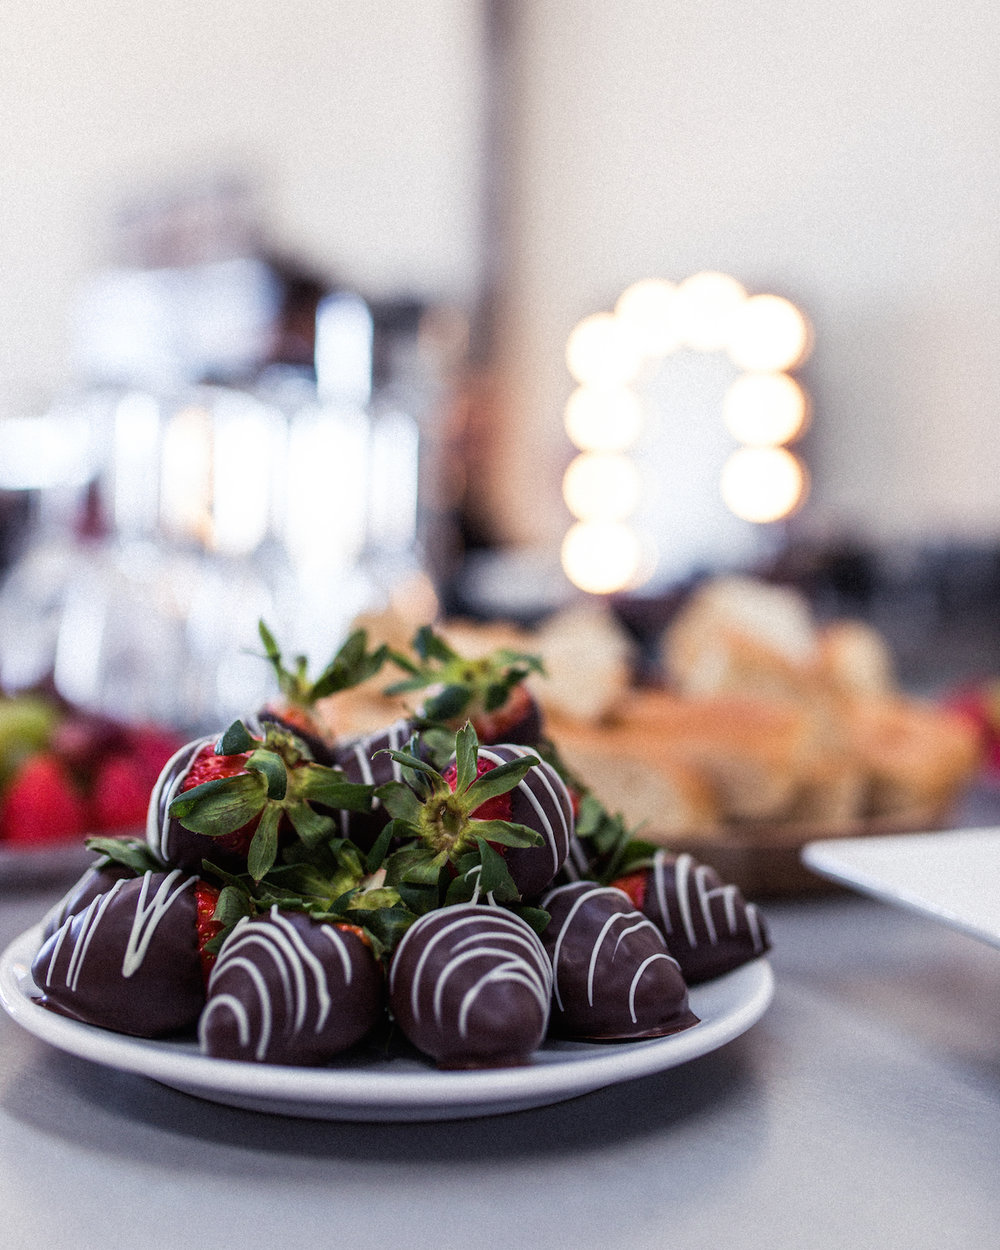 The day began with Strawberries, Chocolate and Champagne